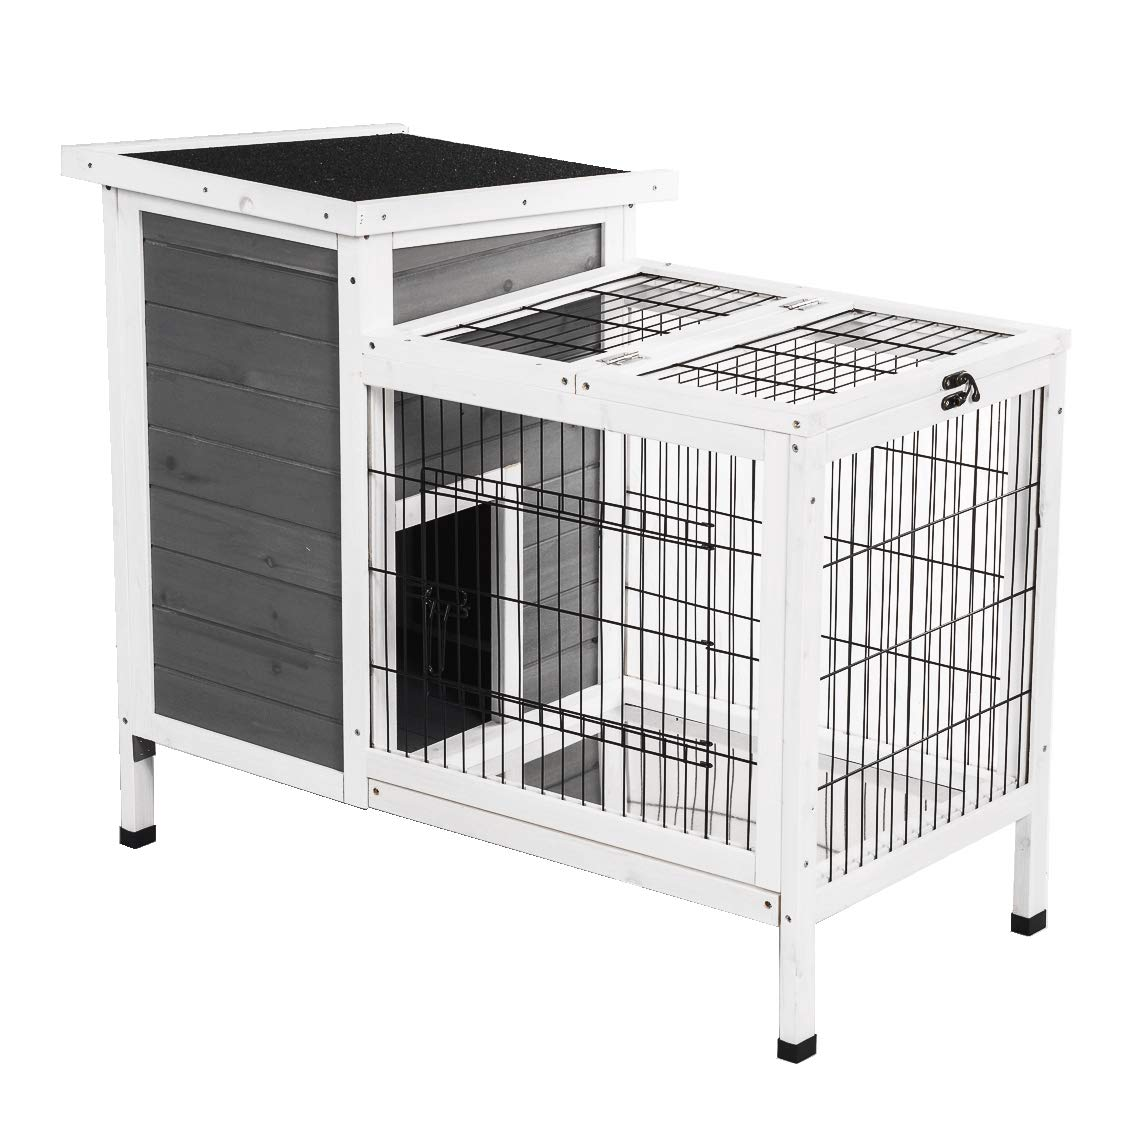 Good Life Wooden Outdoor Bunny Hutch Rabbit Cage Guinea Pig Coop PET House Gray & White Color PET502 by GOOD LIFE USA (Image #1)